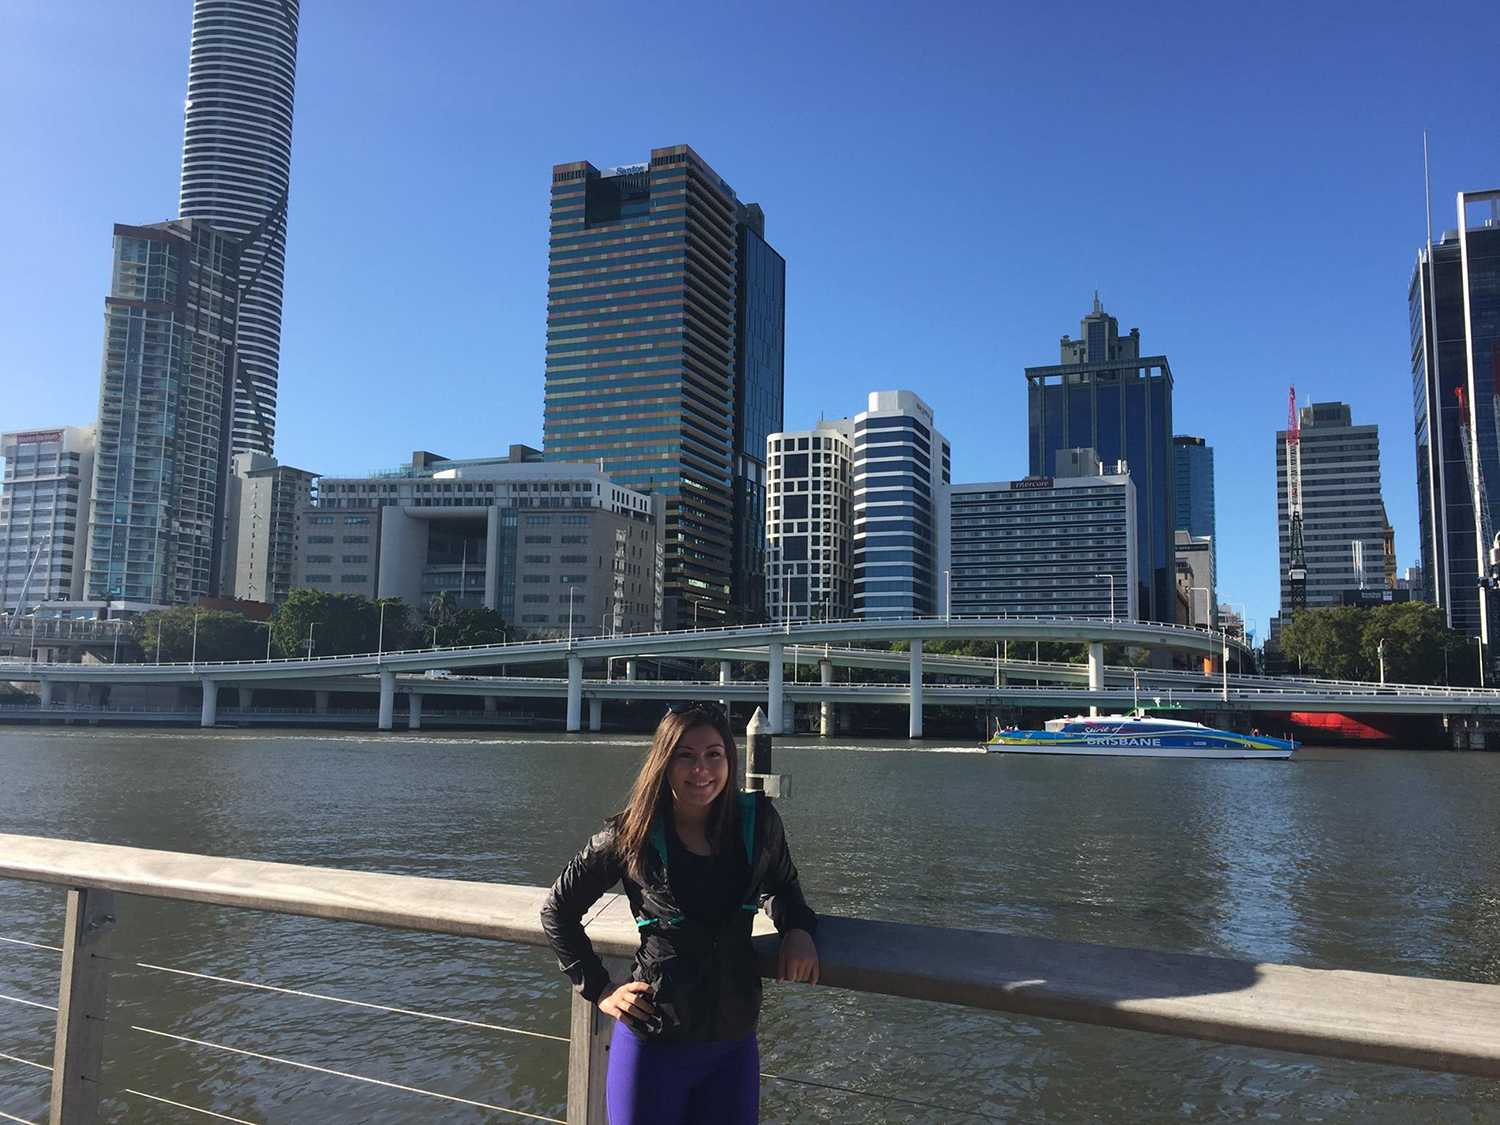 Student reflects on life in Australia